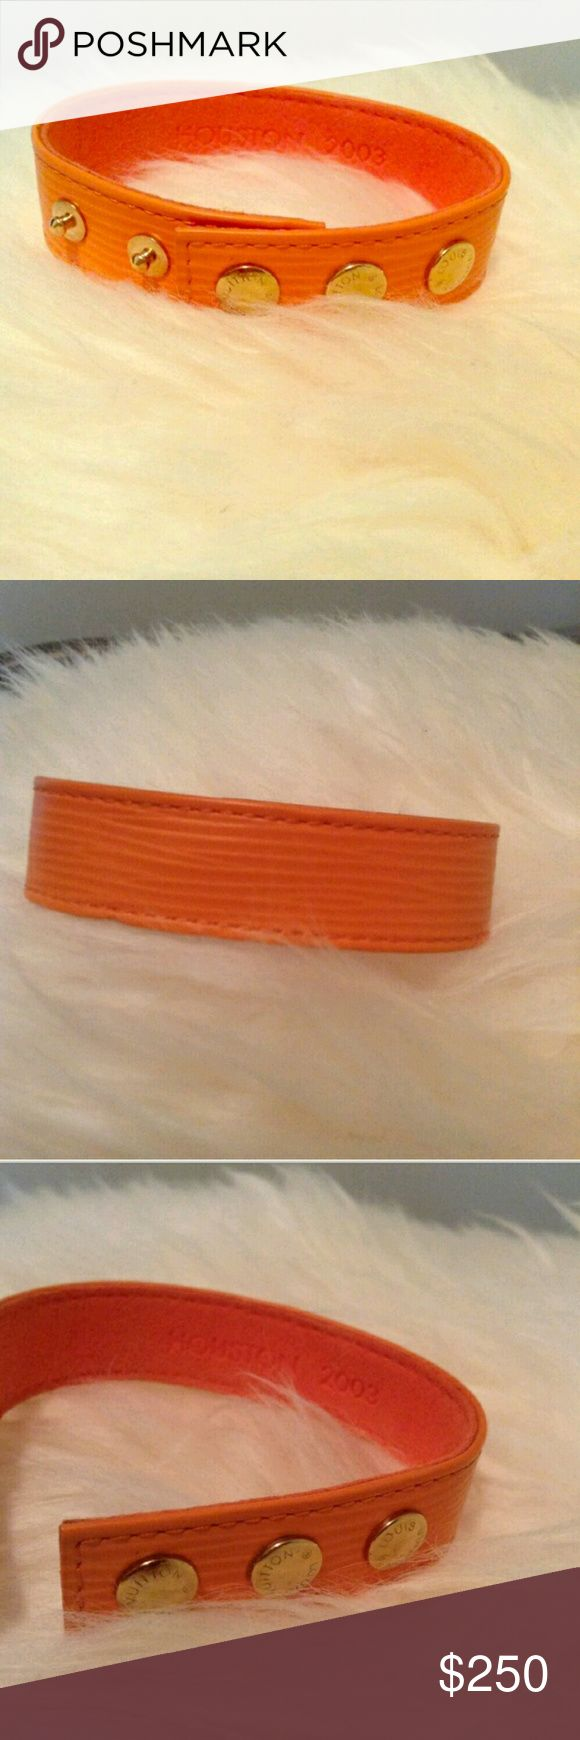 AUTHENTIC Louis Vuitton VIP epi leather bracelet AUTHENTIC rate epi VIP bracelet  these were only given to VIP costumers this one is the Houston TX mandarin orange epi with gold snaps .....feel free to ask anything thanks for looking and happy poshing Louis Vuitton Jewelry Bracelets